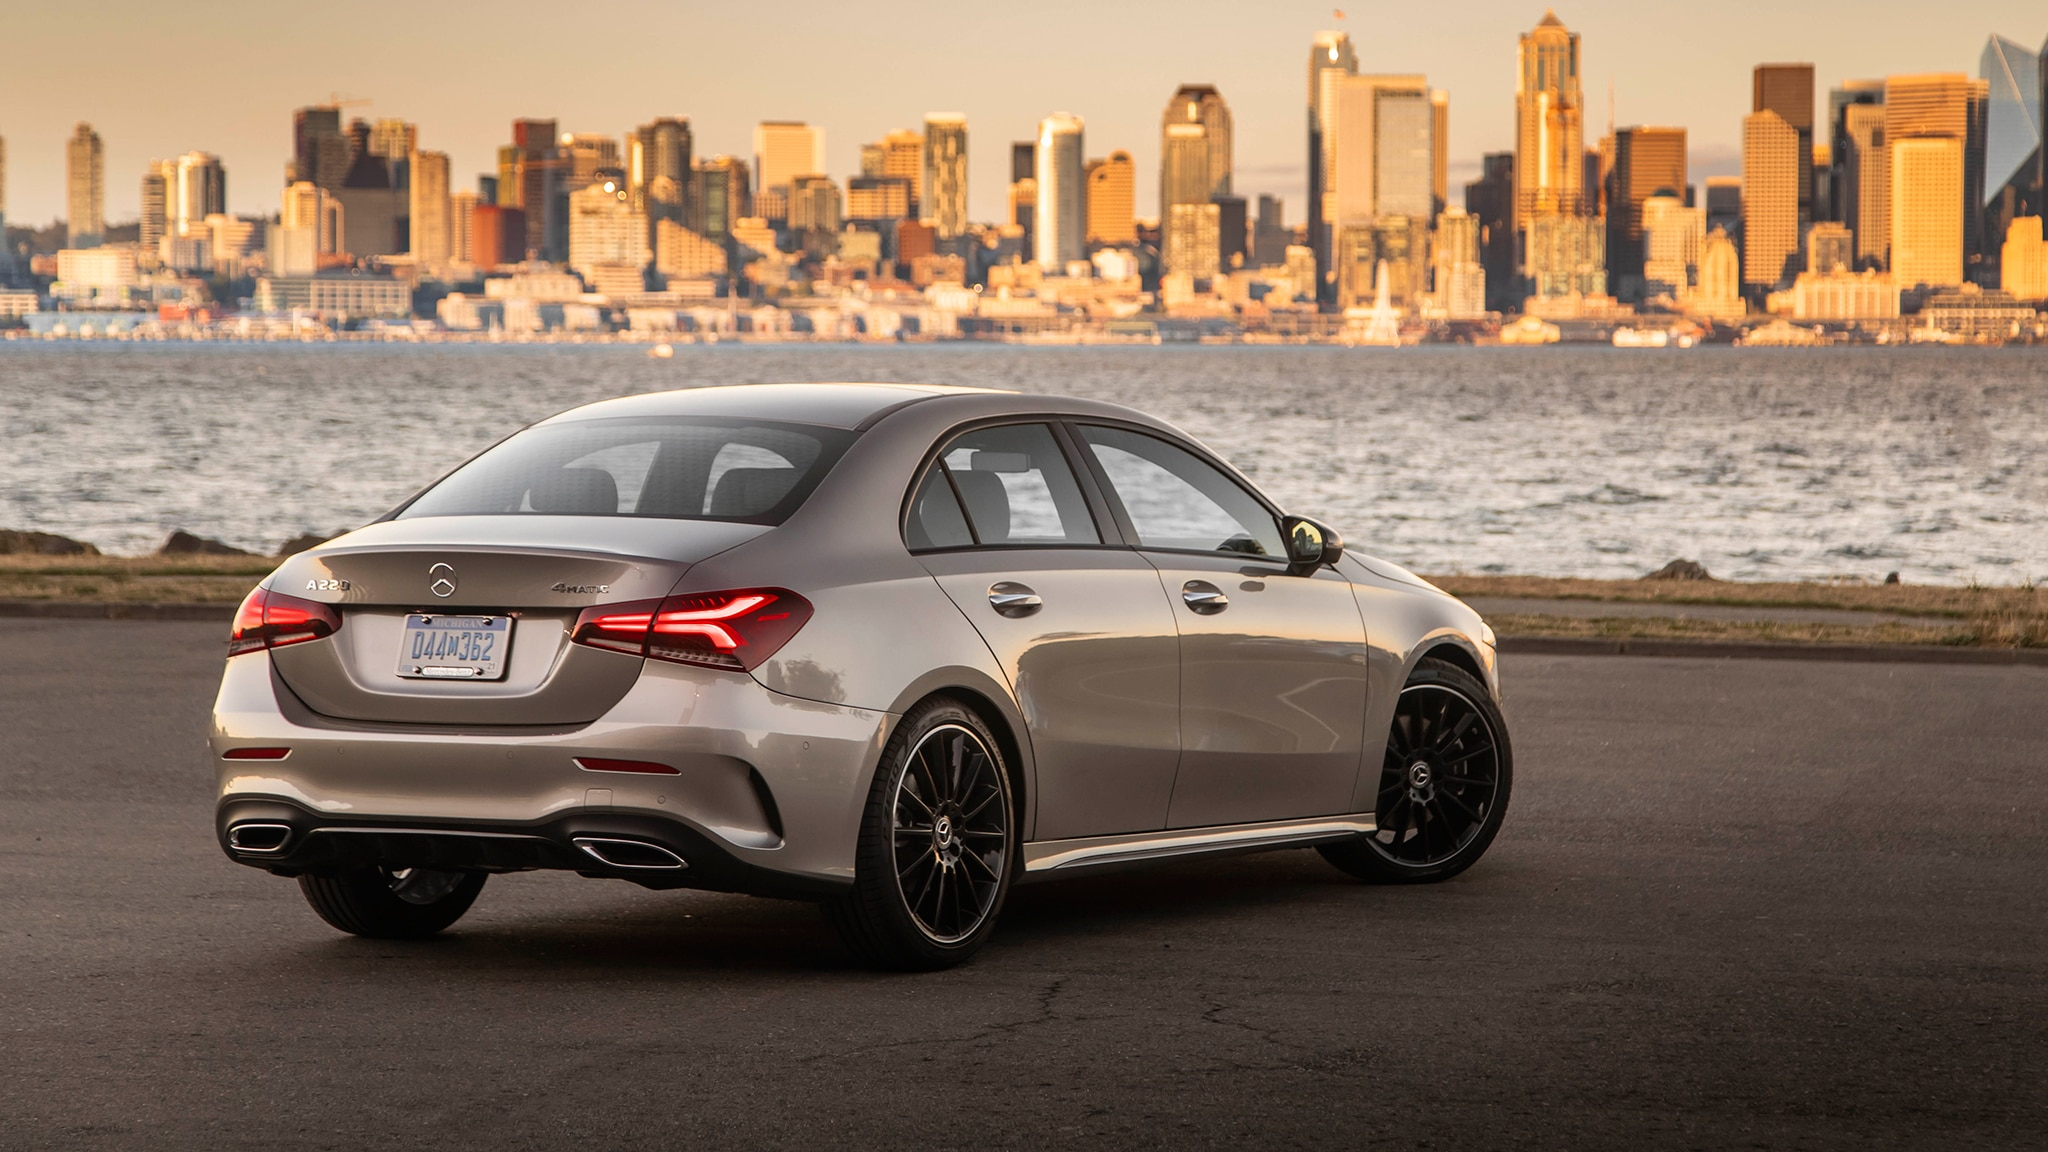 The New Mercedes-Benz A-Class Has a Price: $33,495